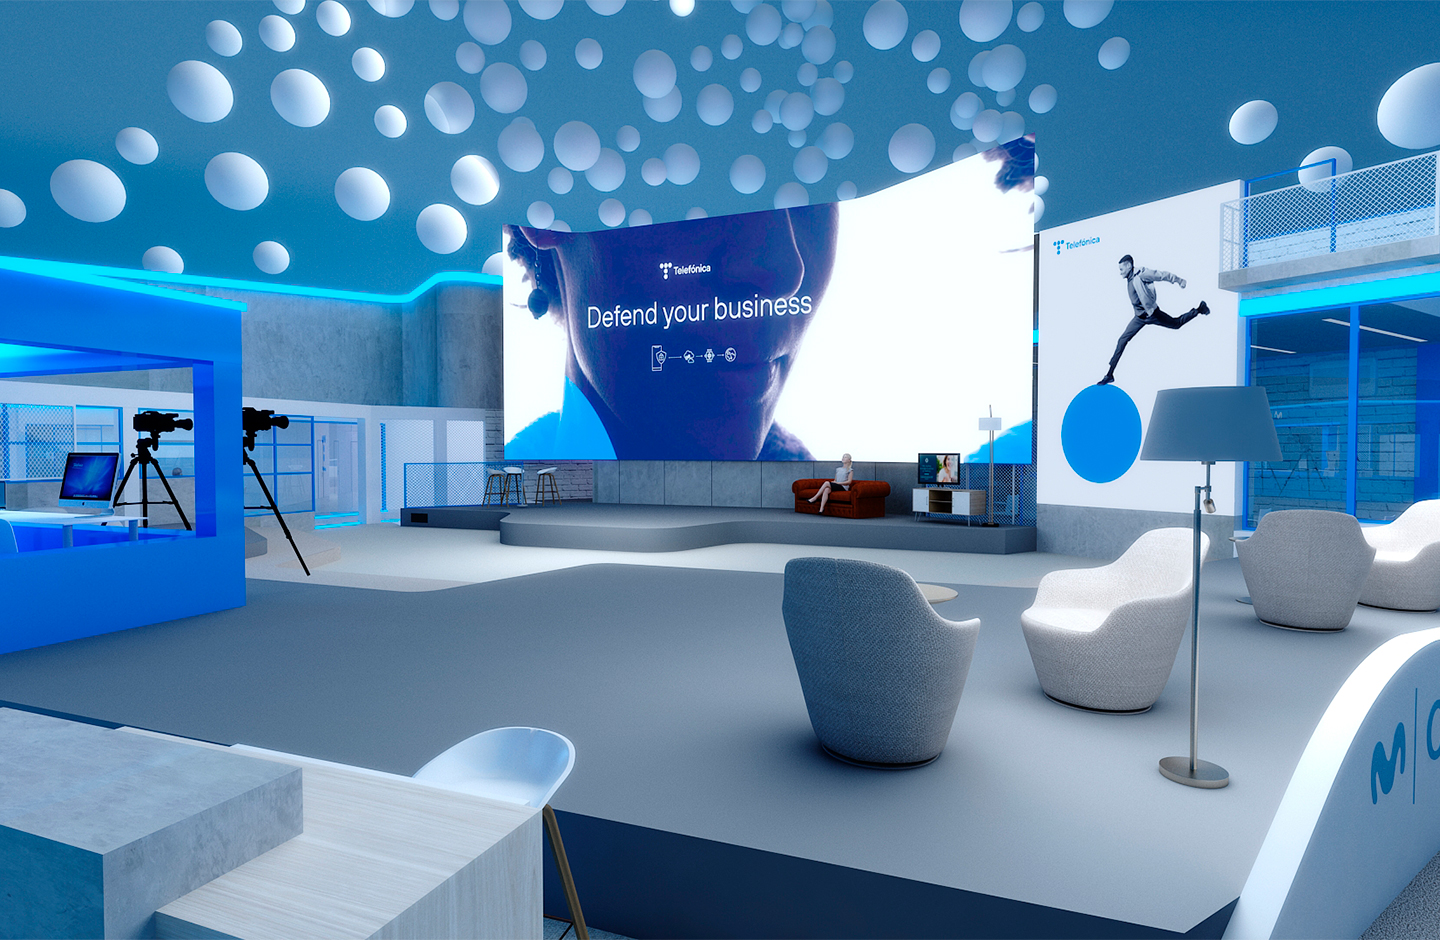 Telefónica attends MWC 2021 to reinforce its commitment to economic recovery based on digital transformation and sustainability